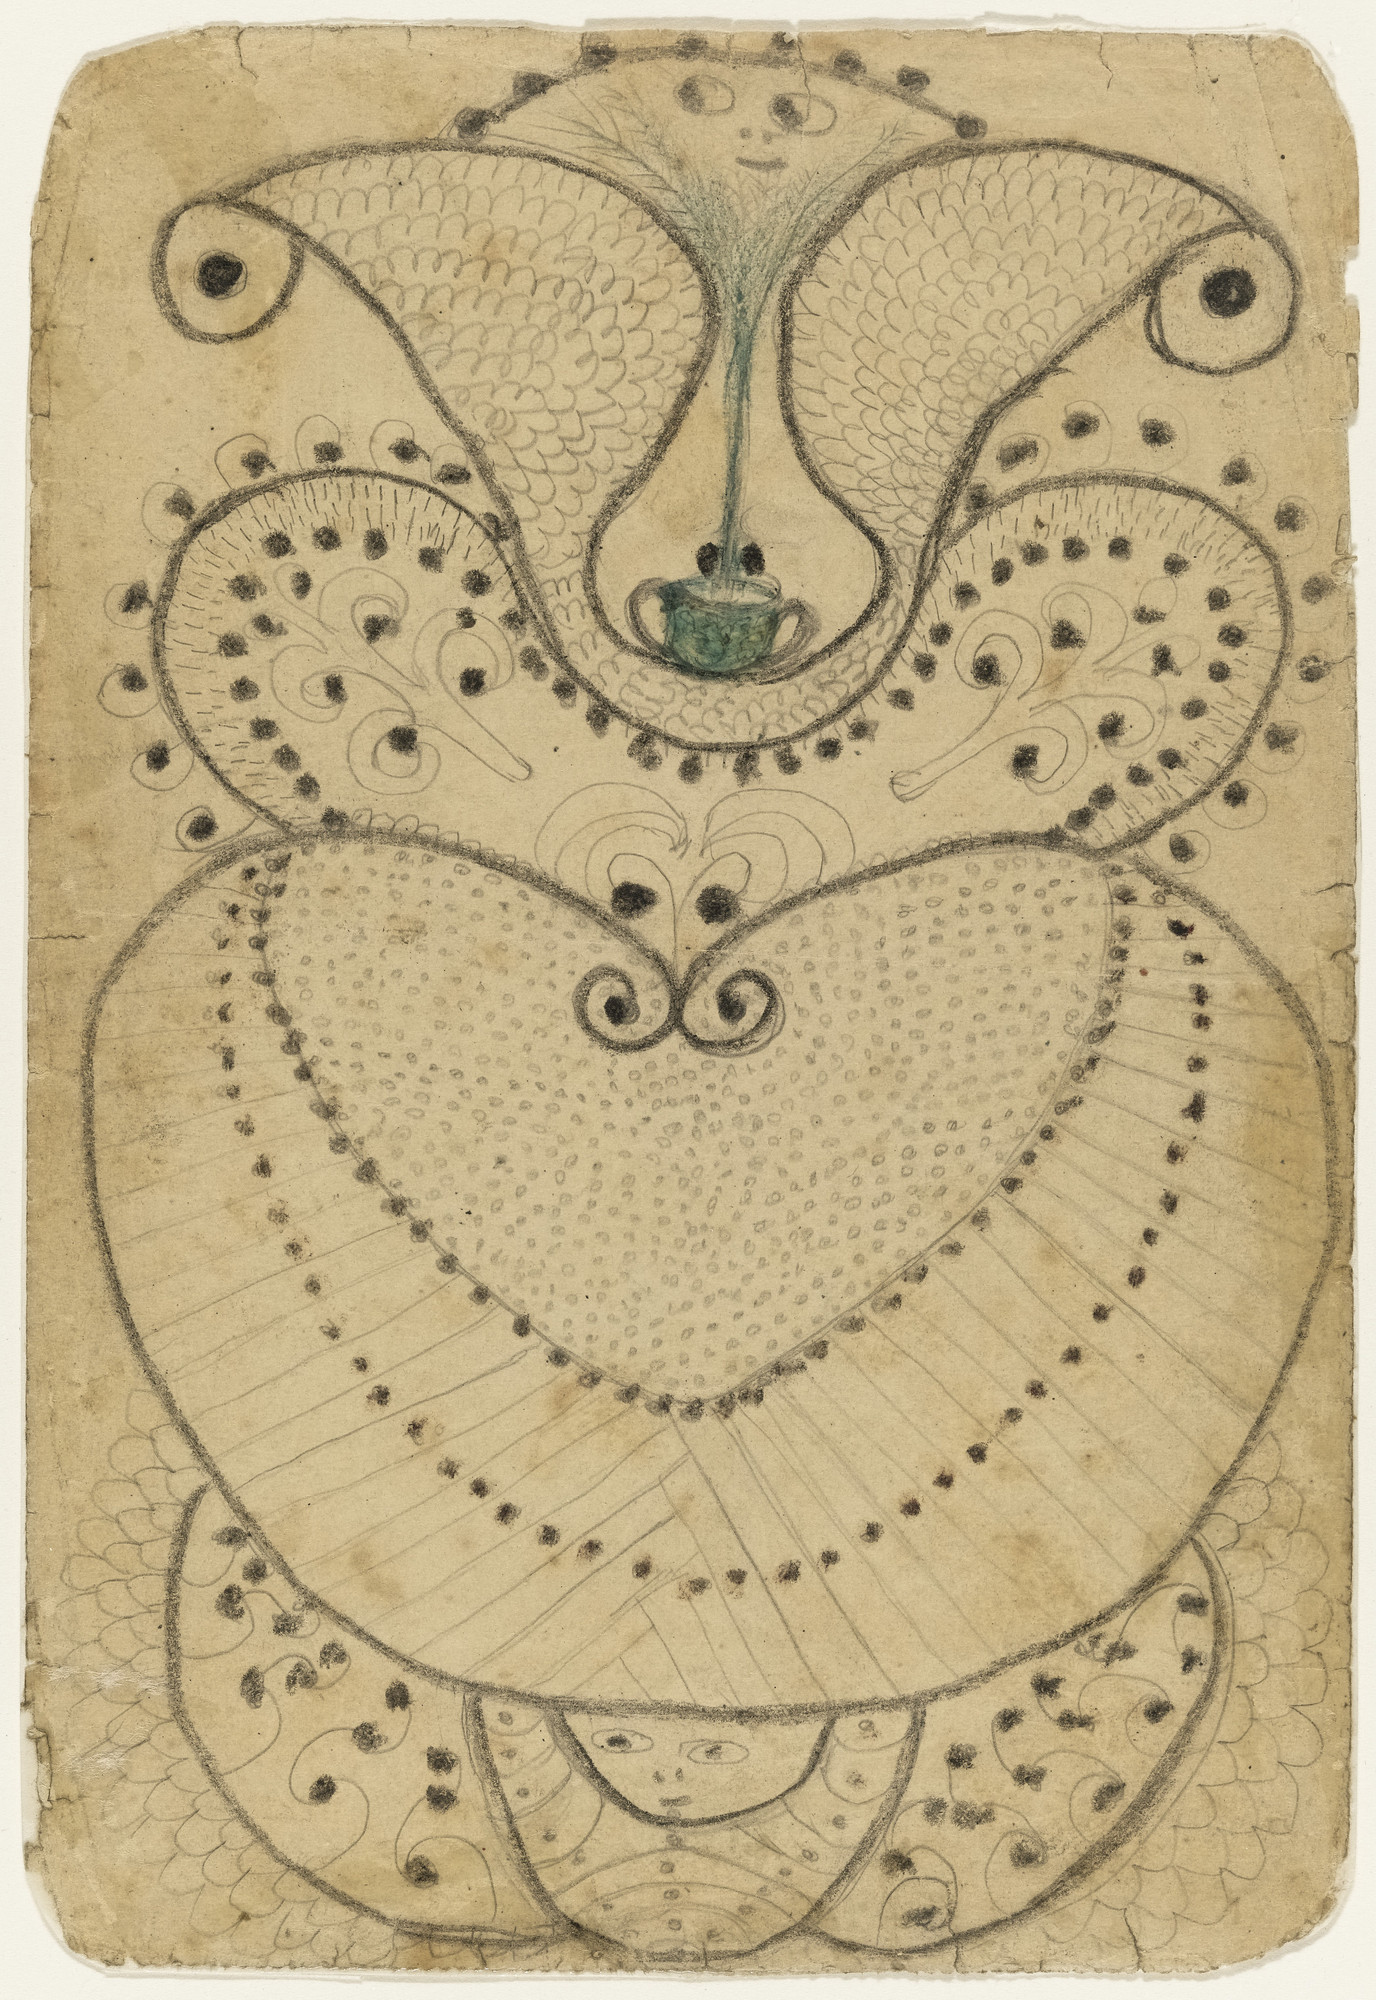 Minnie Evans. Untitled (Bull's Head at Top, Dots and Curves). c. 1940